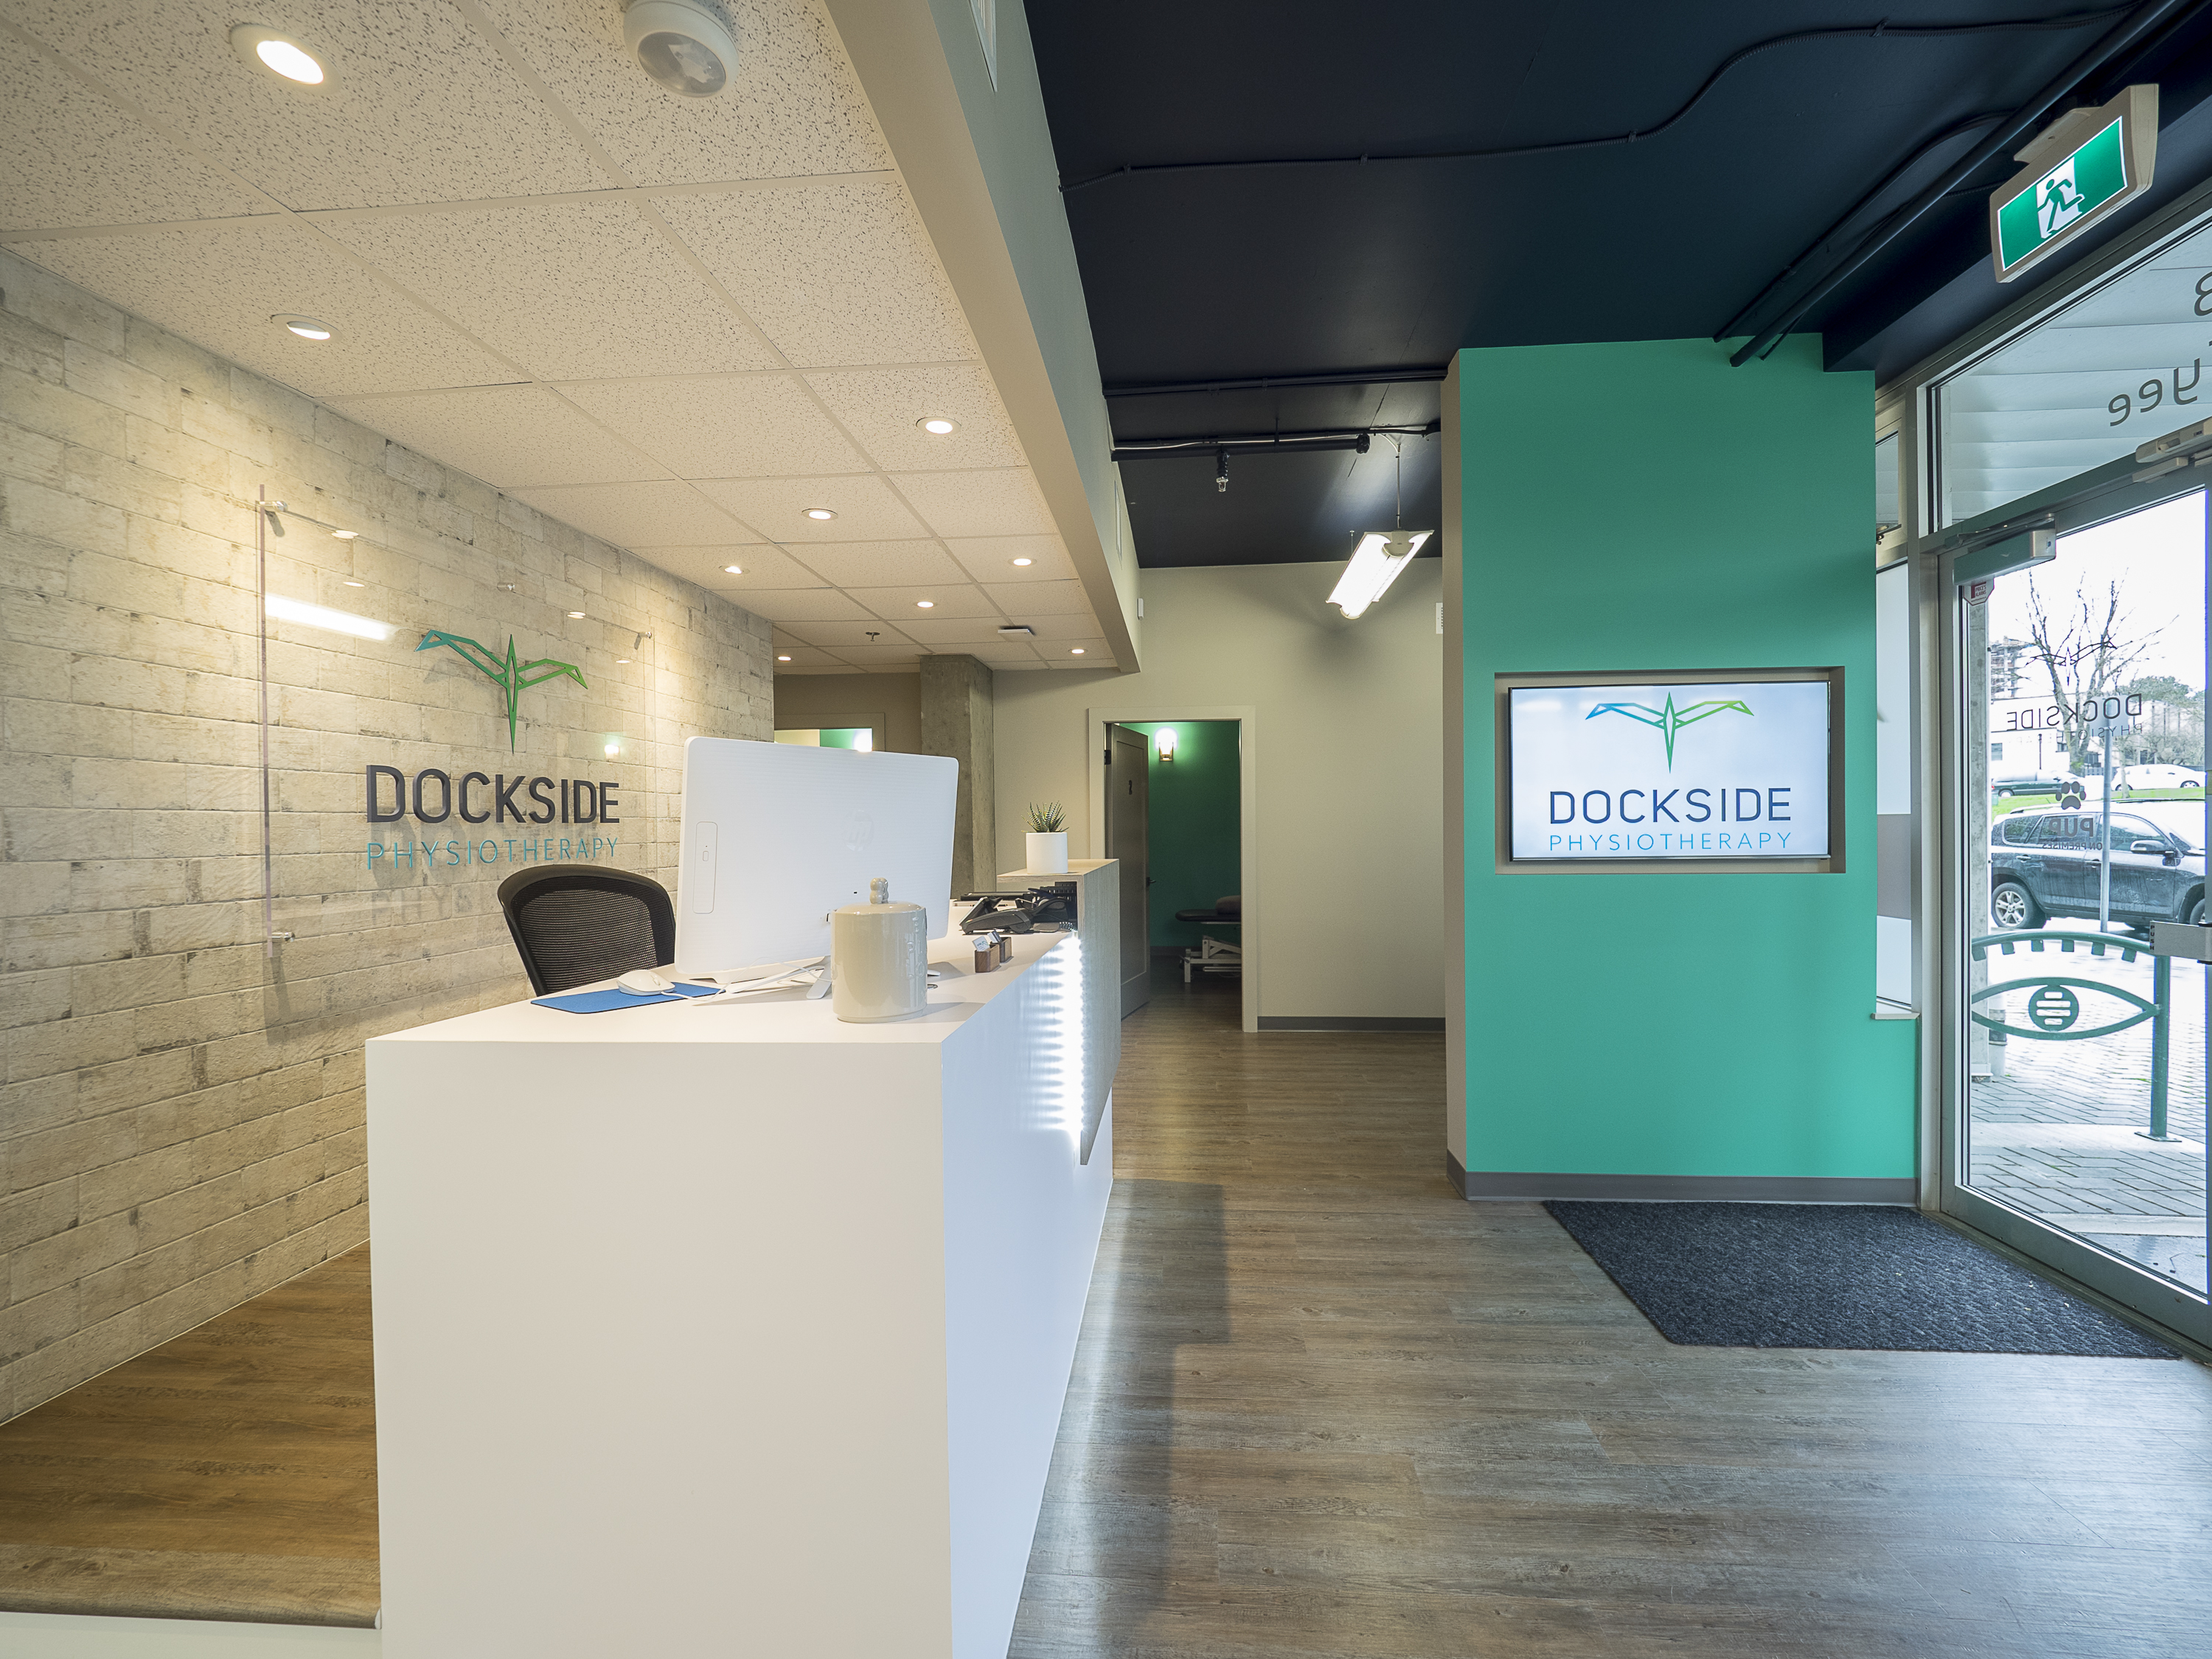 Dockside Physiotherapy